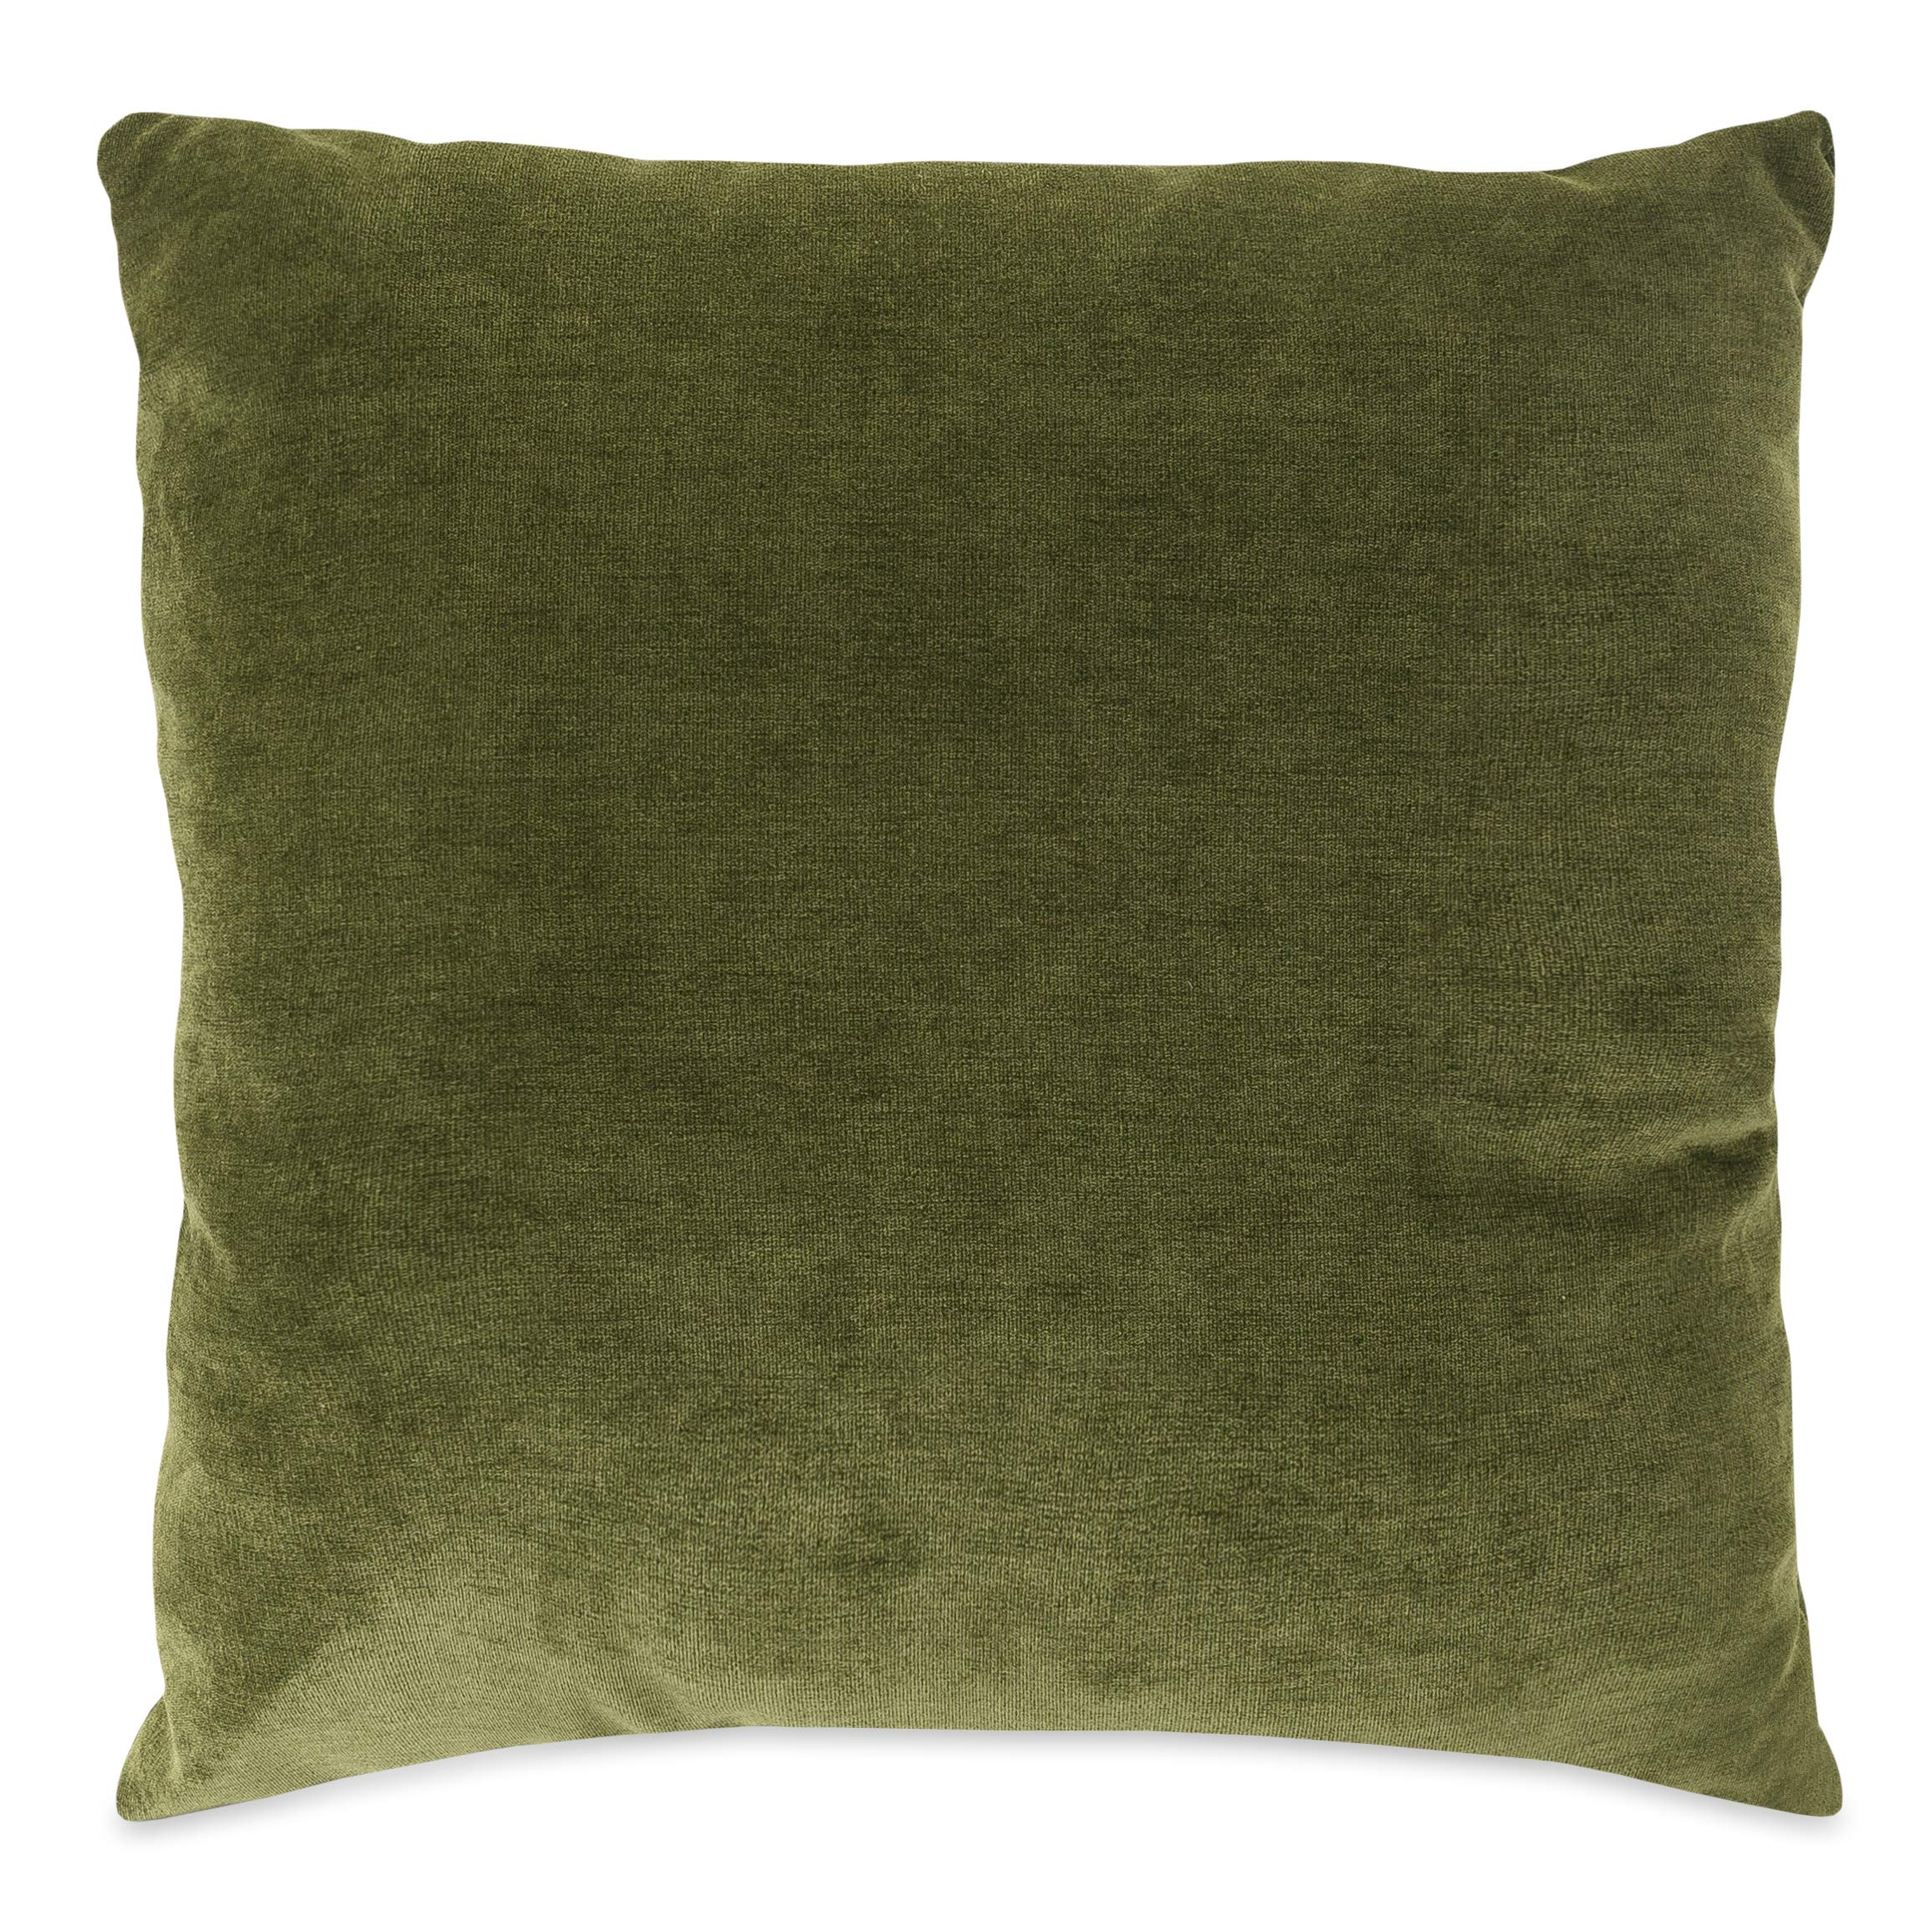 Majestic Home Goods Fern Villa Indoor Large Pillow 20'' L x 8'' W x 20'' H by Majestic Home Goods